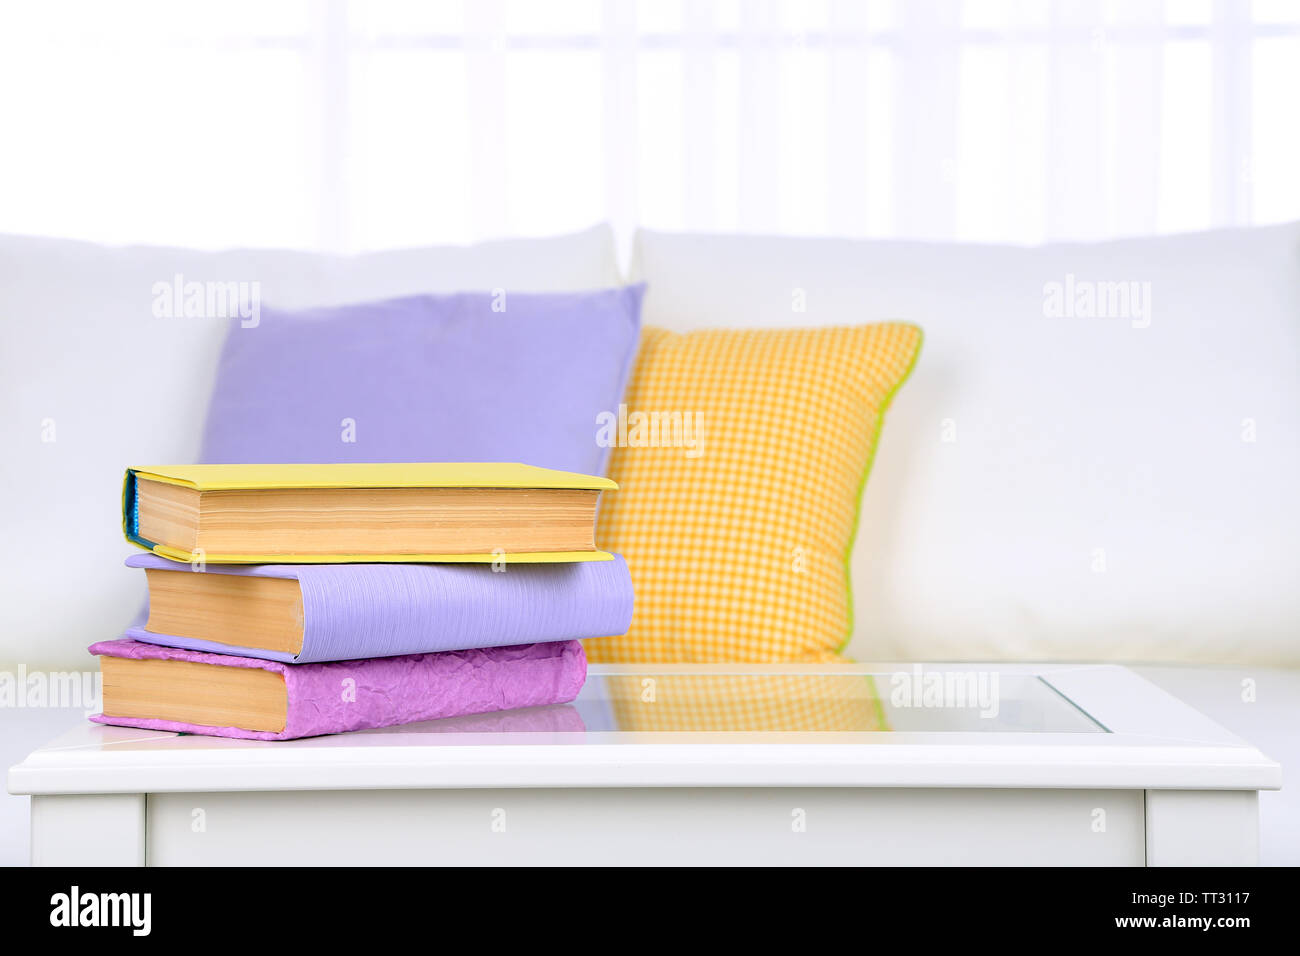 Books on coffee table in room - Stock Image